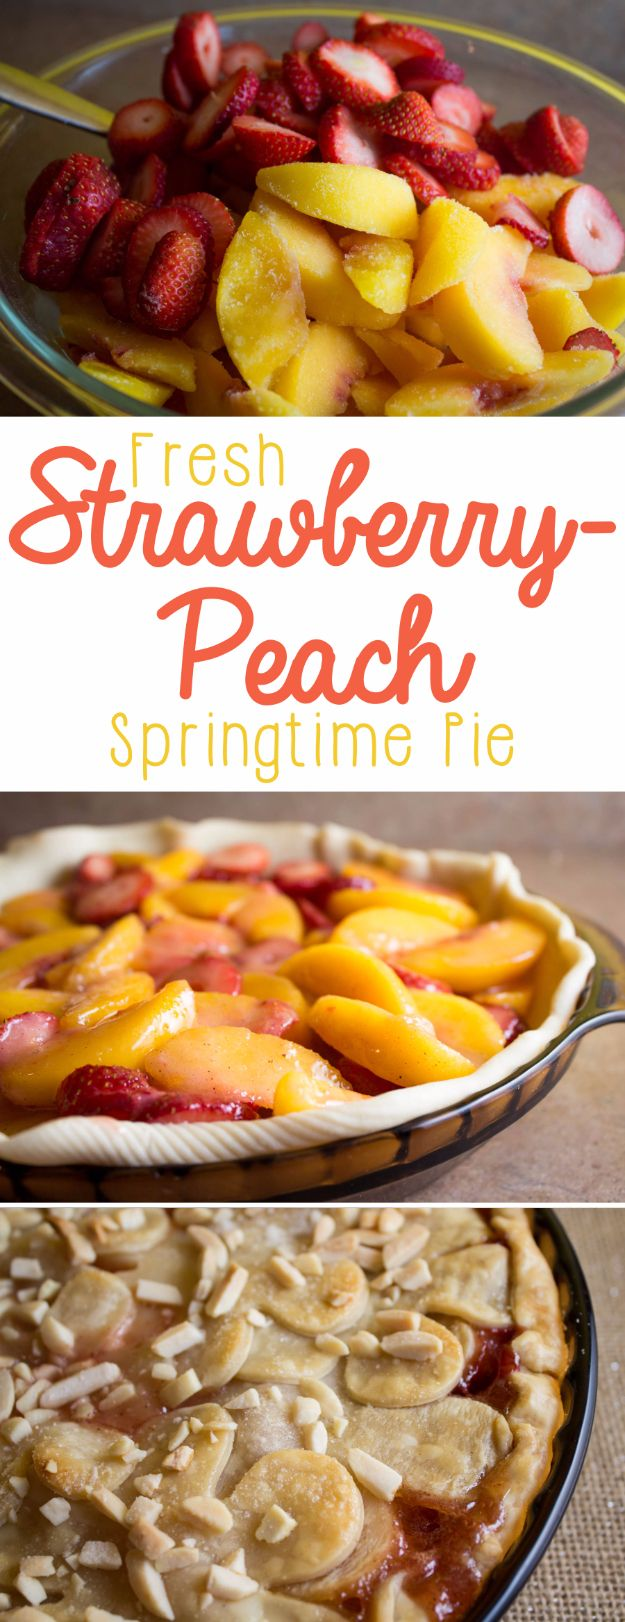 Best Pie Recipes - Fresh Strawberry Peach Pie - Easy Pie Recipes From Scratch for Pecan, Apple, Banana, Pumpkin, Fruit, Peach and Chocolate Pies. Yummy Graham Cracker Crusts and Homemade Meringue - Thanksgiving and Christmas Pies and Mason Jar Pie Recipes http://diyjoy.com/best-pie-recipes